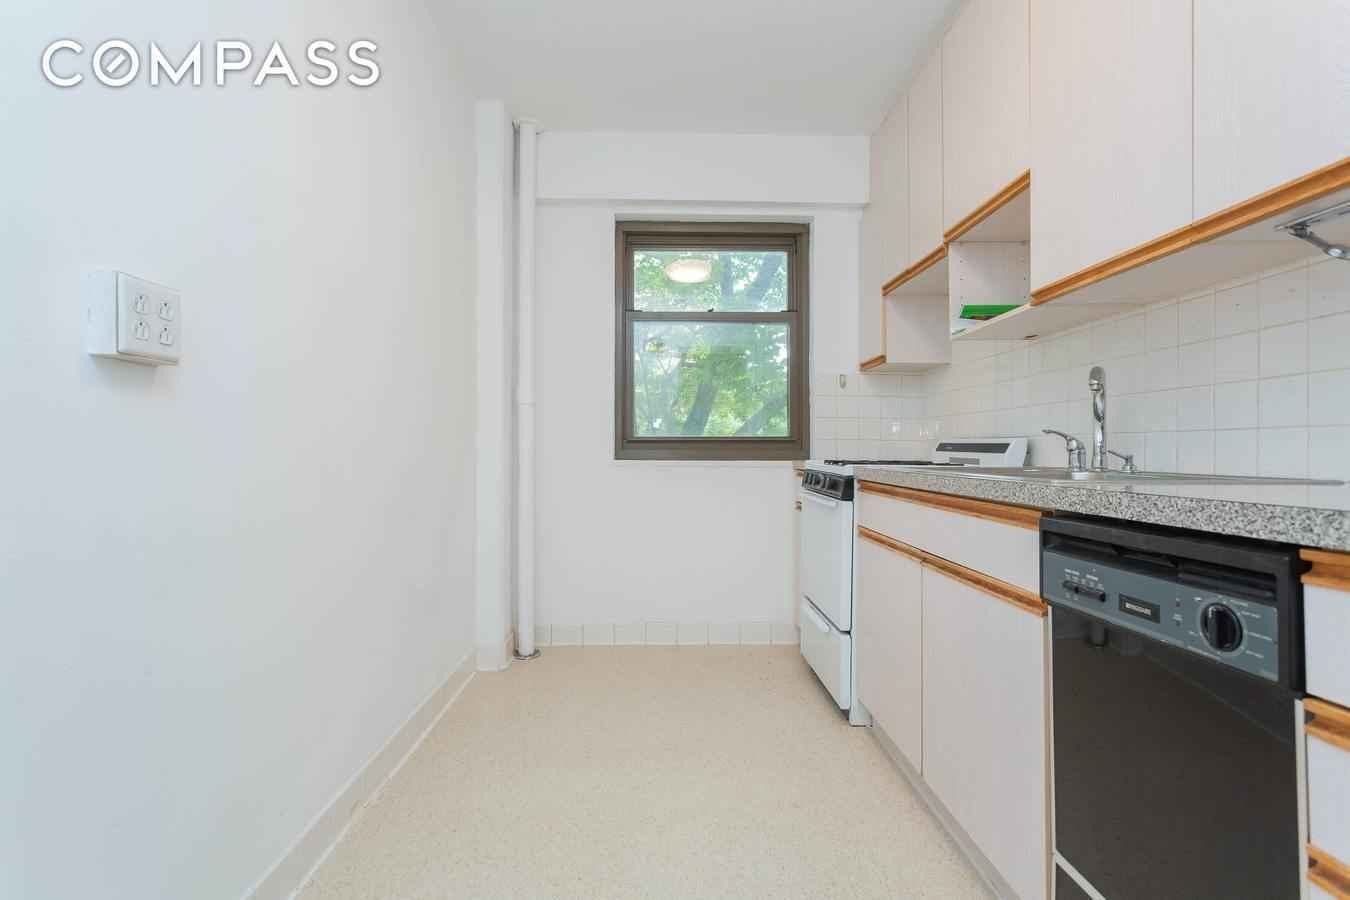 Apartment for sale at 21-20 33rd Road, Apt 3-C